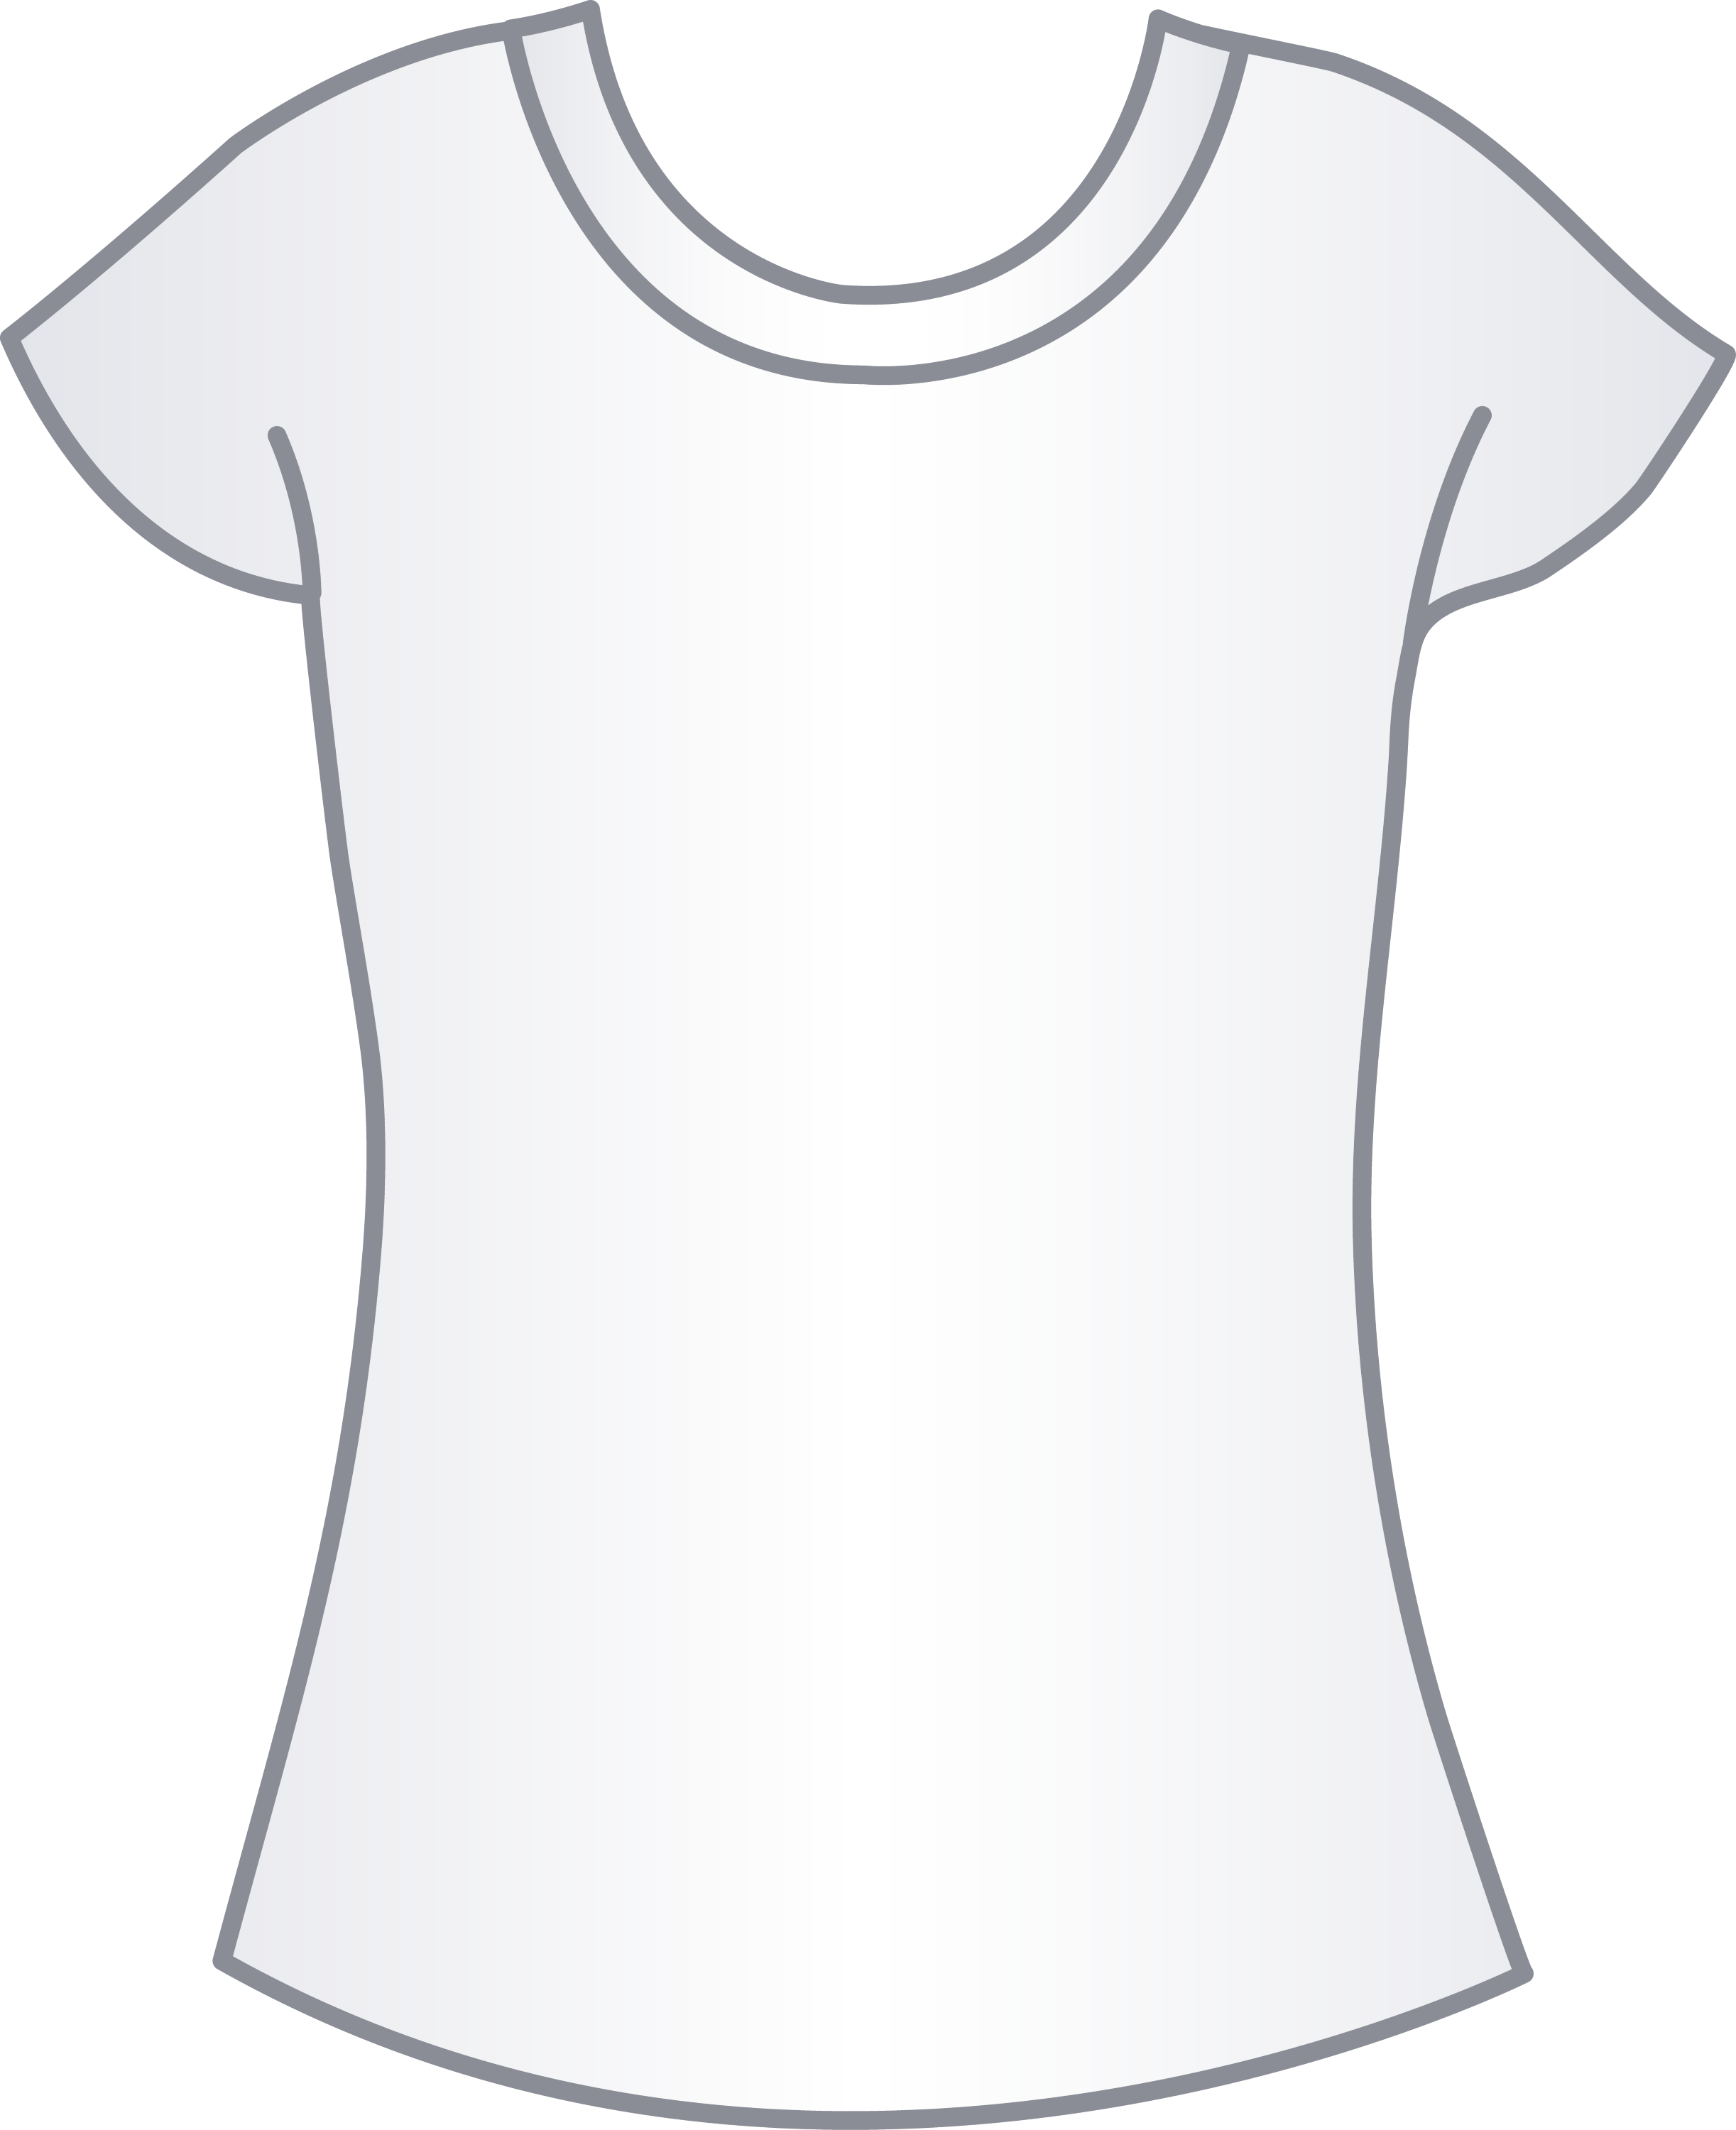 womens white t shirt template free clip art rh sweetclipart com free clip art t-shirt outline